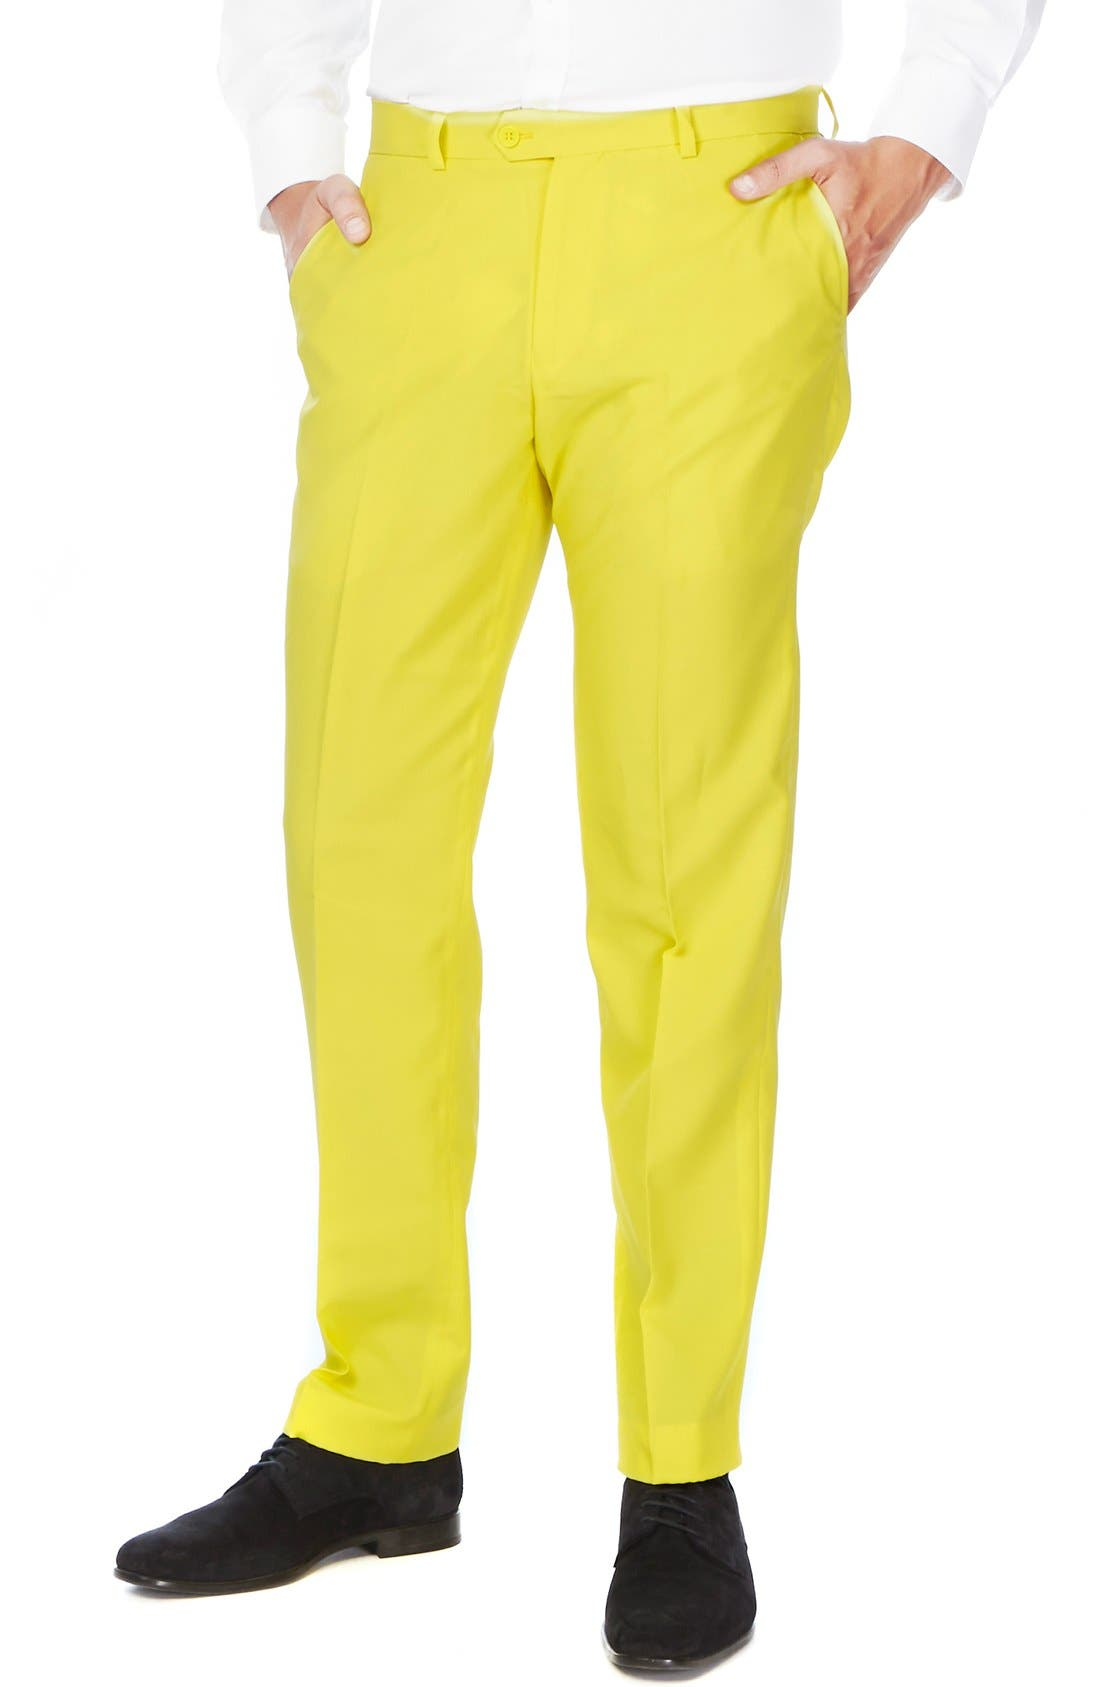 'Yellow Fellow' Trim Fit Two-Piece Suit with Tie,                             Alternate thumbnail 3, color,                             Yellow